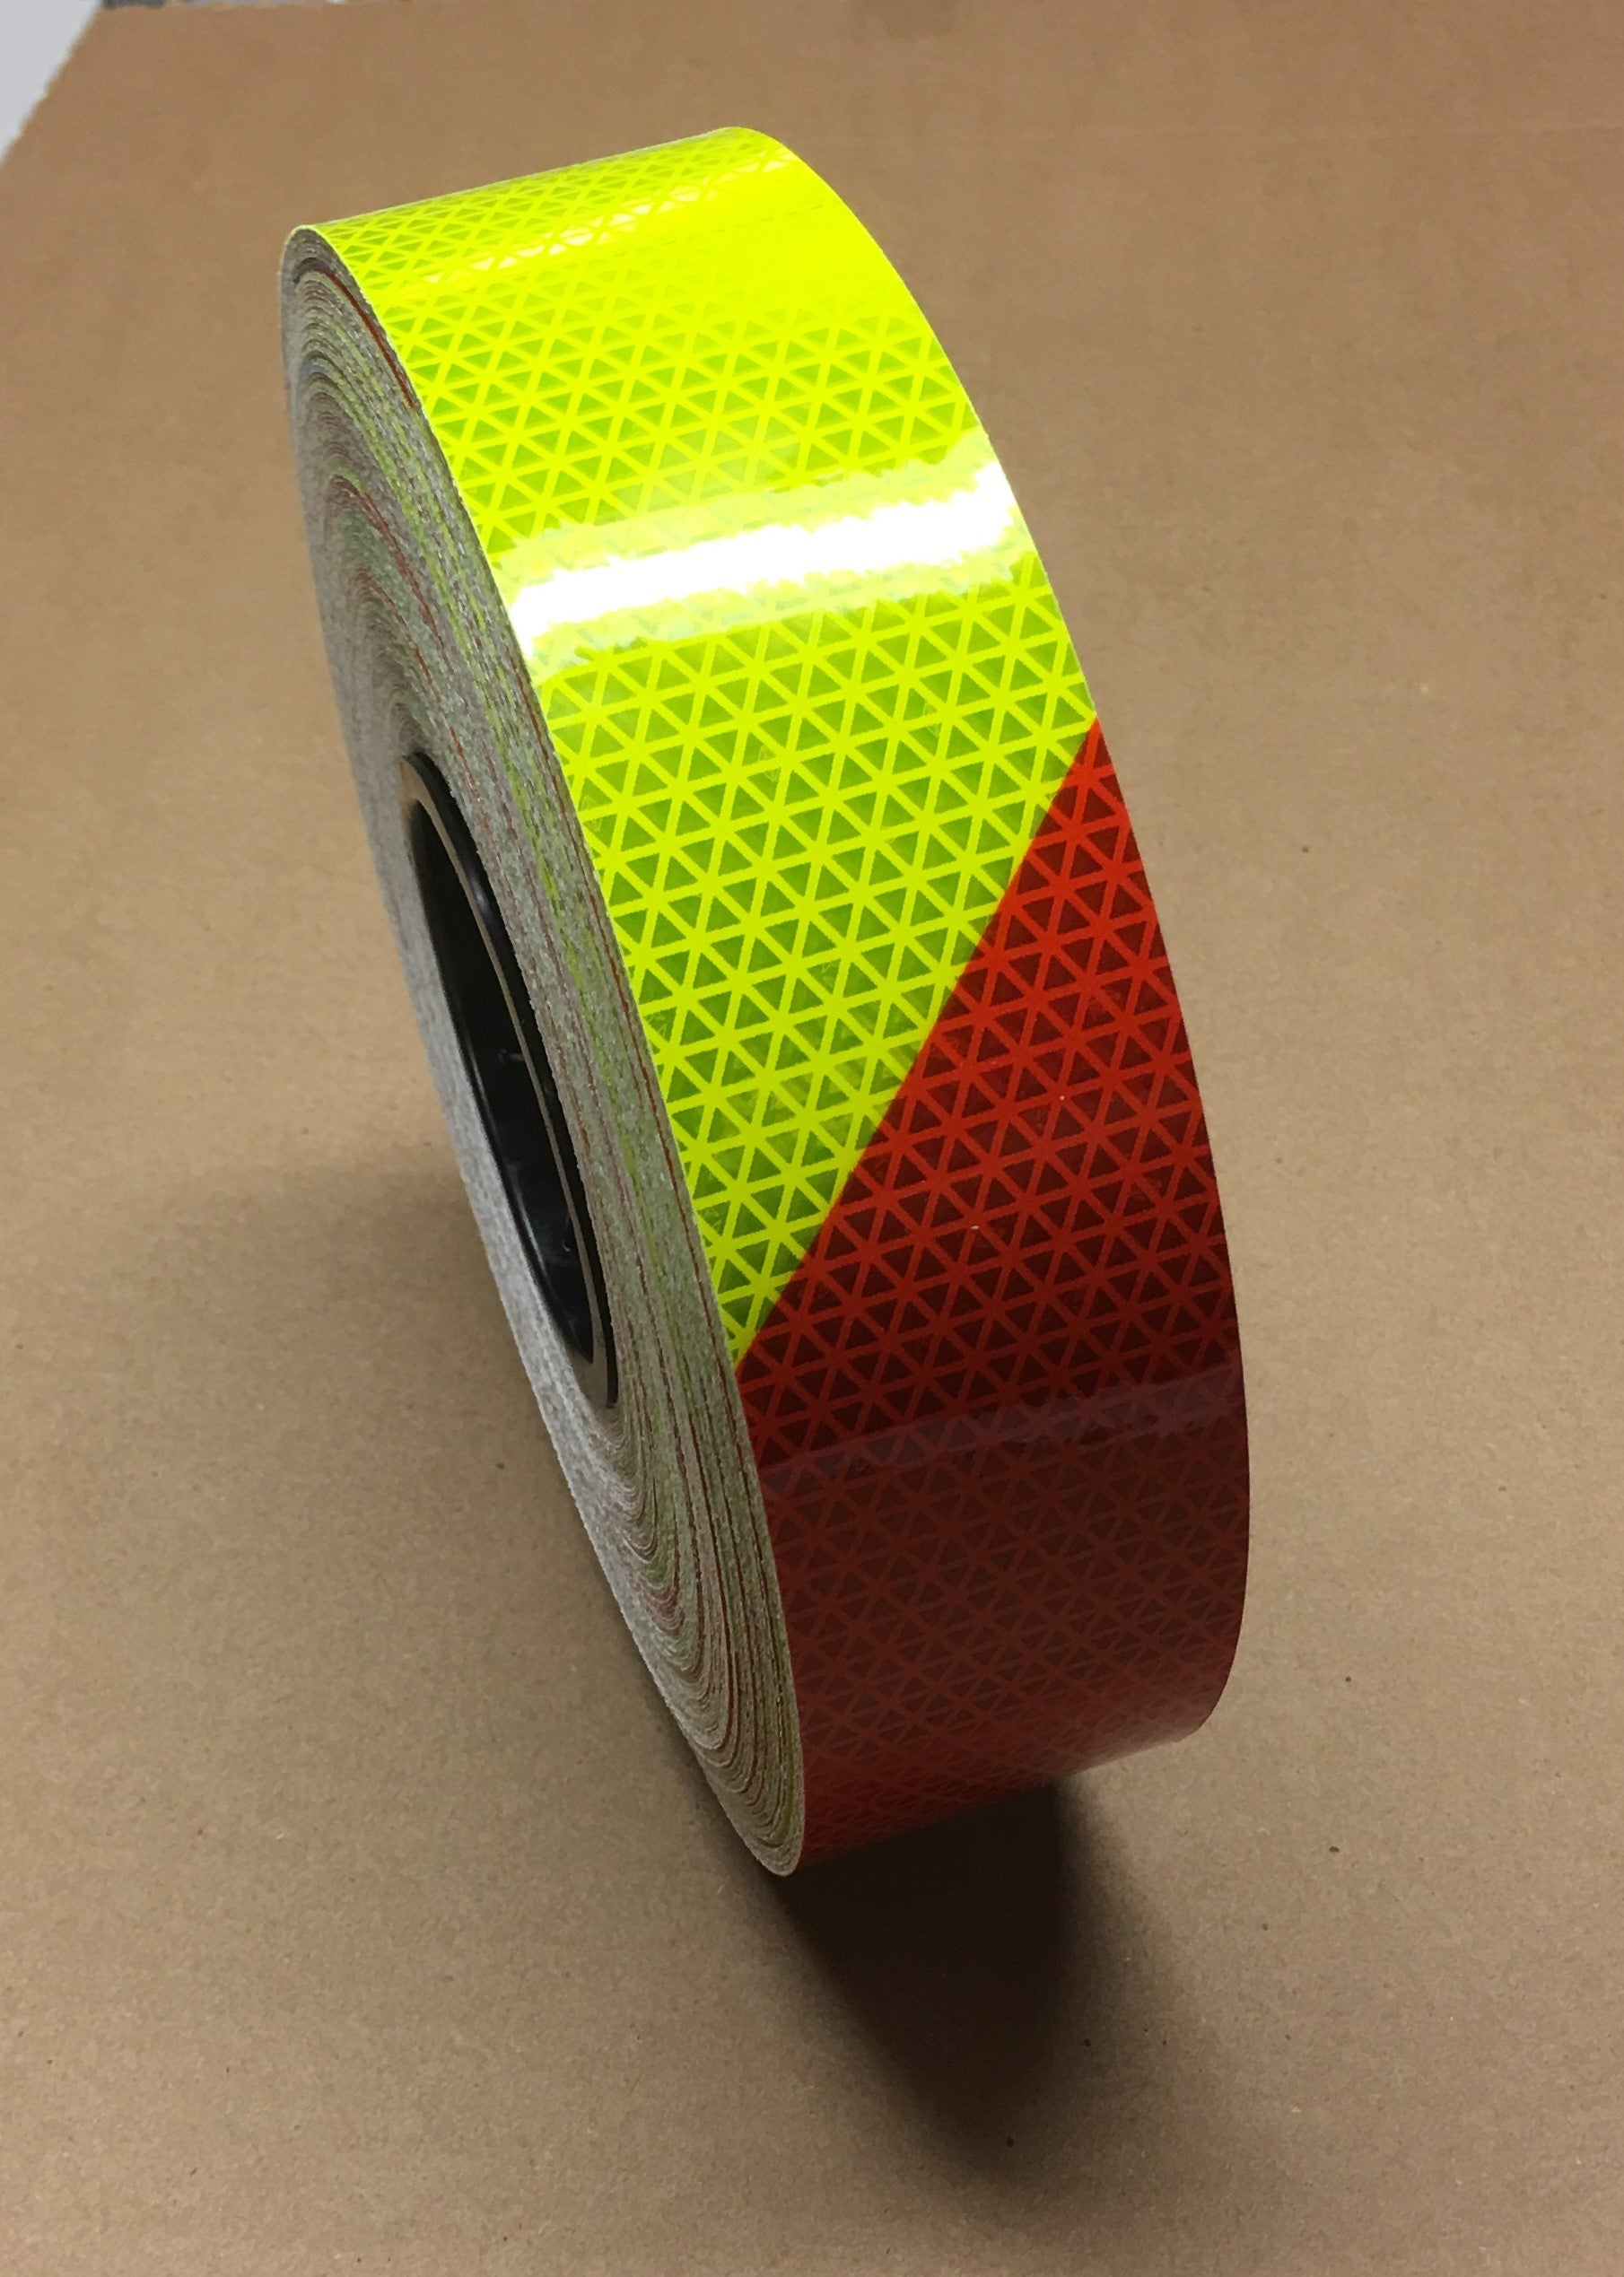 "2"" x 10' Roll V98 Conformable Fluorescent Lime Yellow and Red Striped Reflective Tape Left Hand Slant"